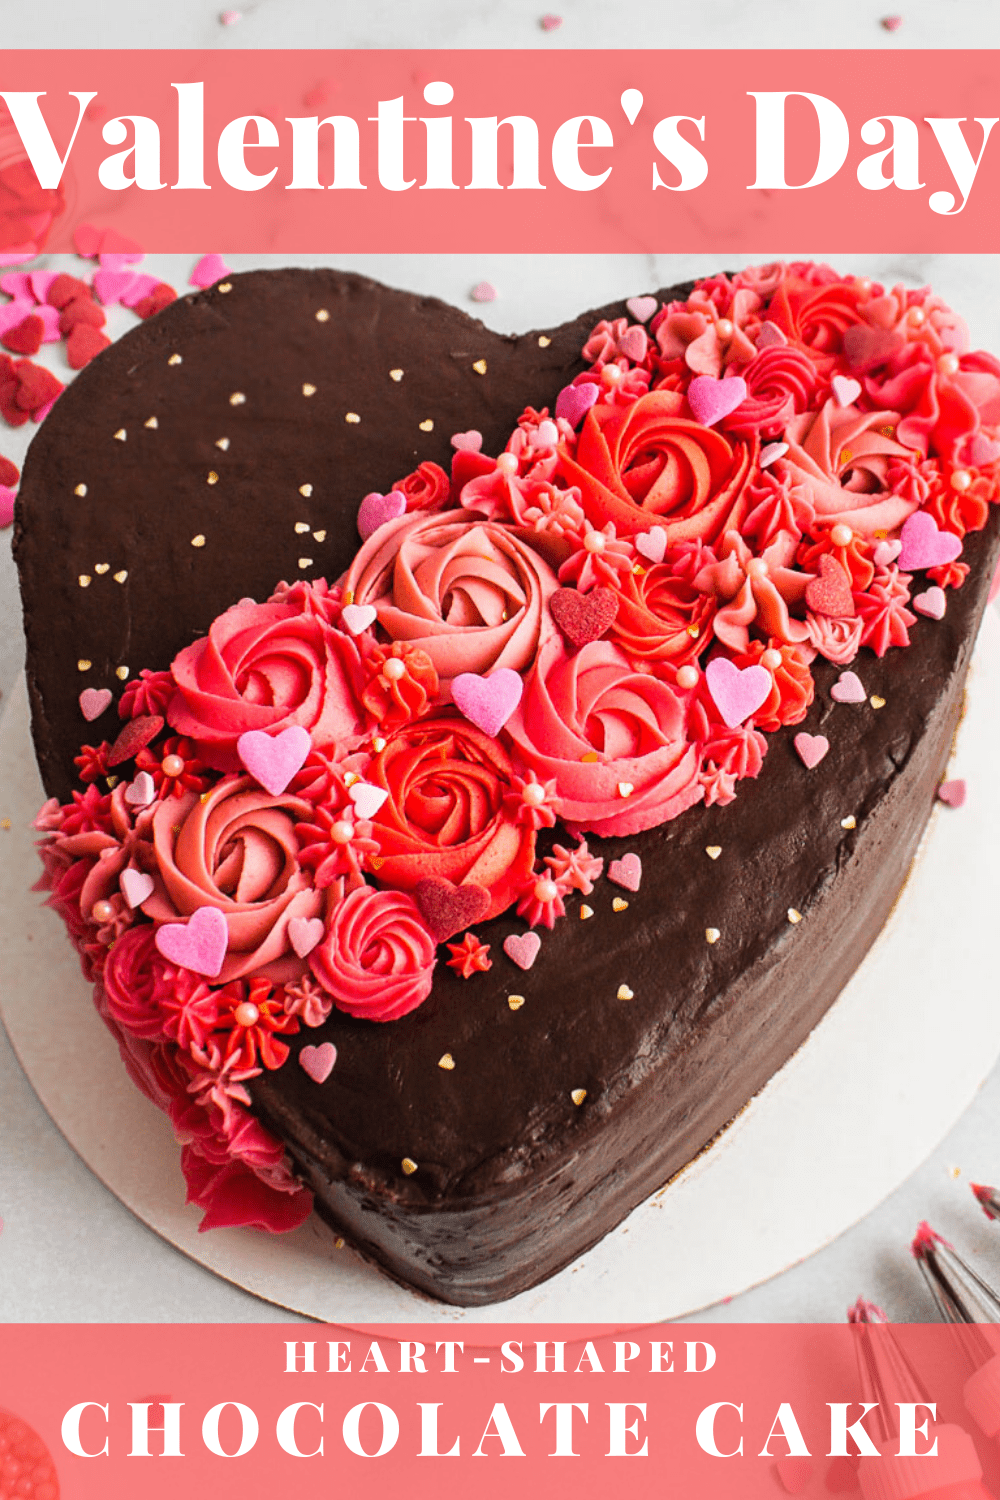 Send online cake in all shape and design. Valentine S Day Chocolate Cake Tutorial Flour Floral